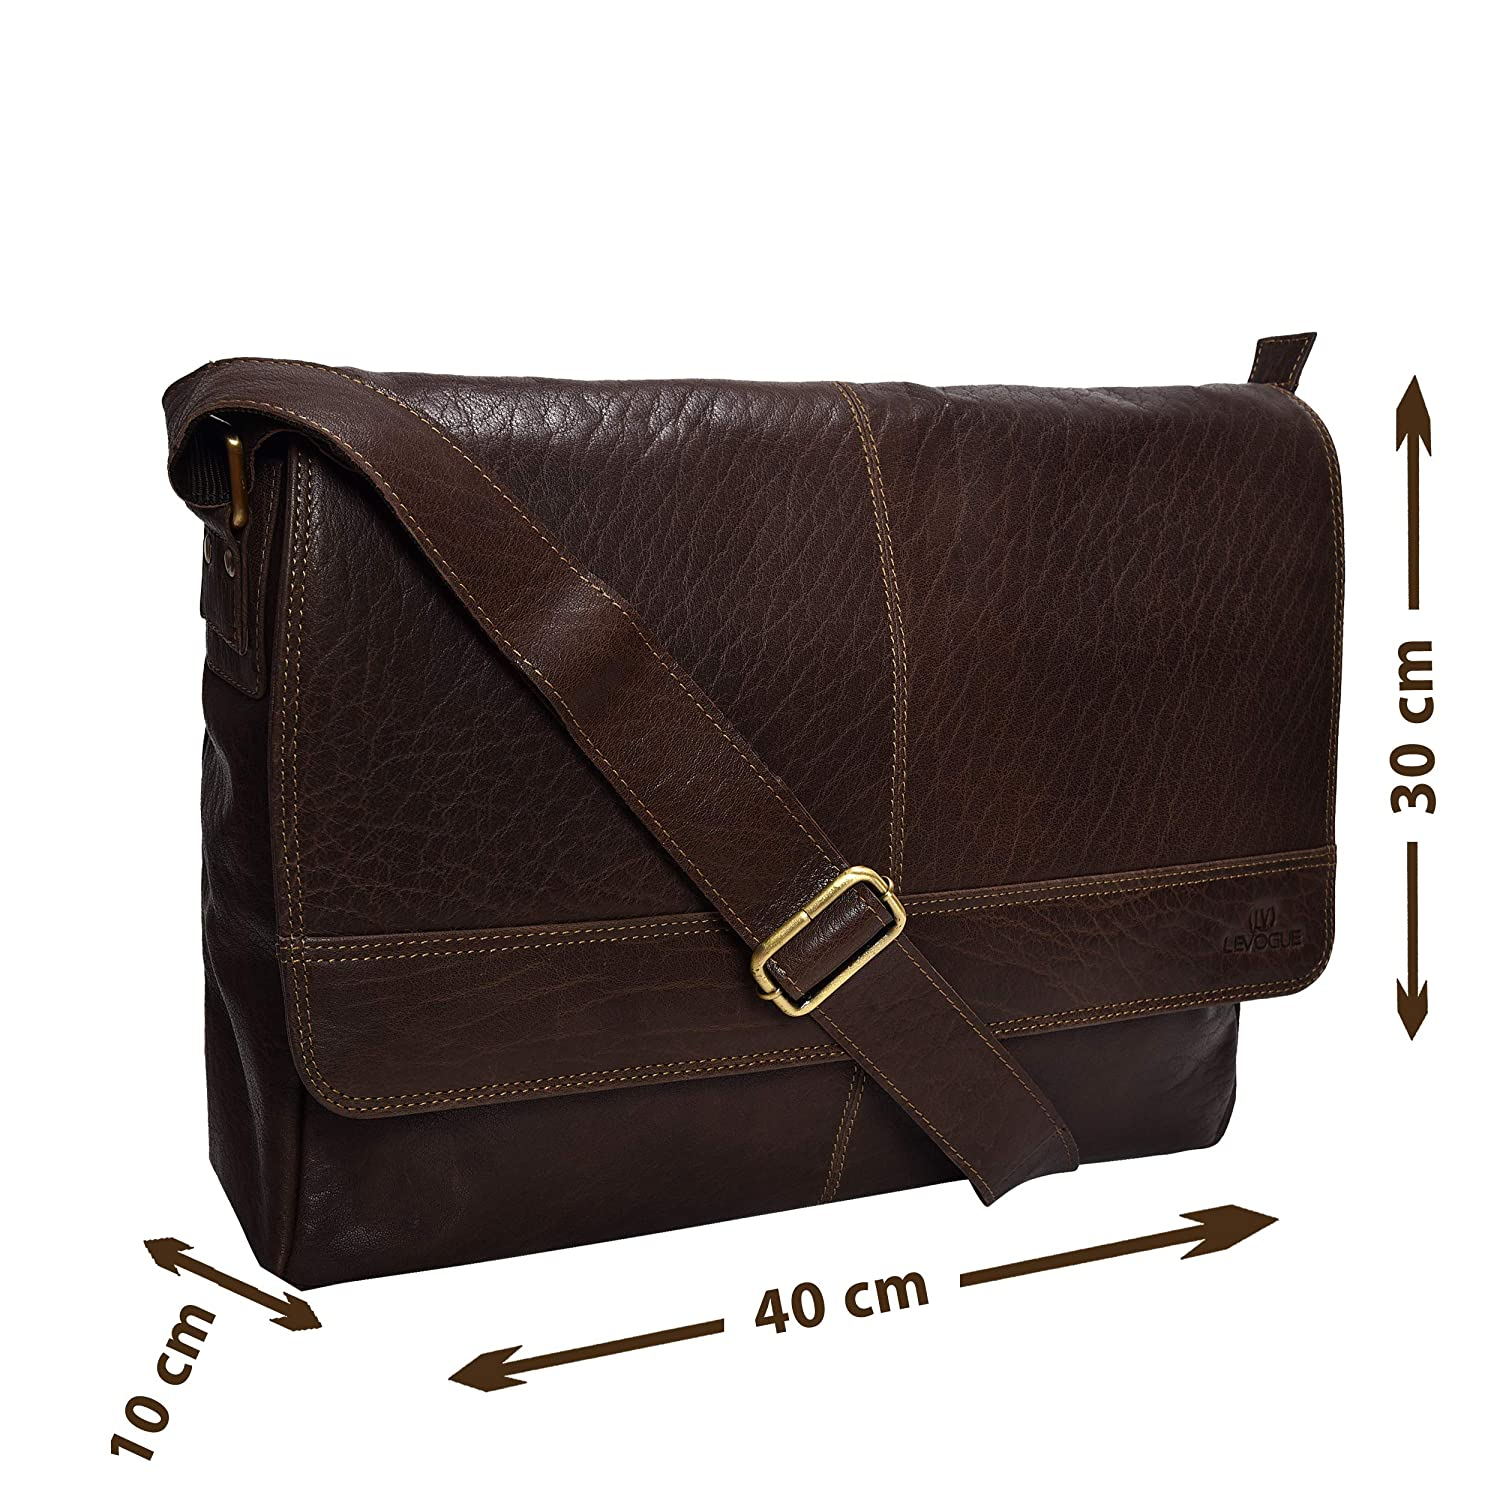 db4dc558915f Amazon.com  Genuine Leather Messenger Bag for Men and Women - 14 inch  Laptop Bag for College Work Office by LEVOGUE (BROWN BUFF TRUMBLE)  D.L.C